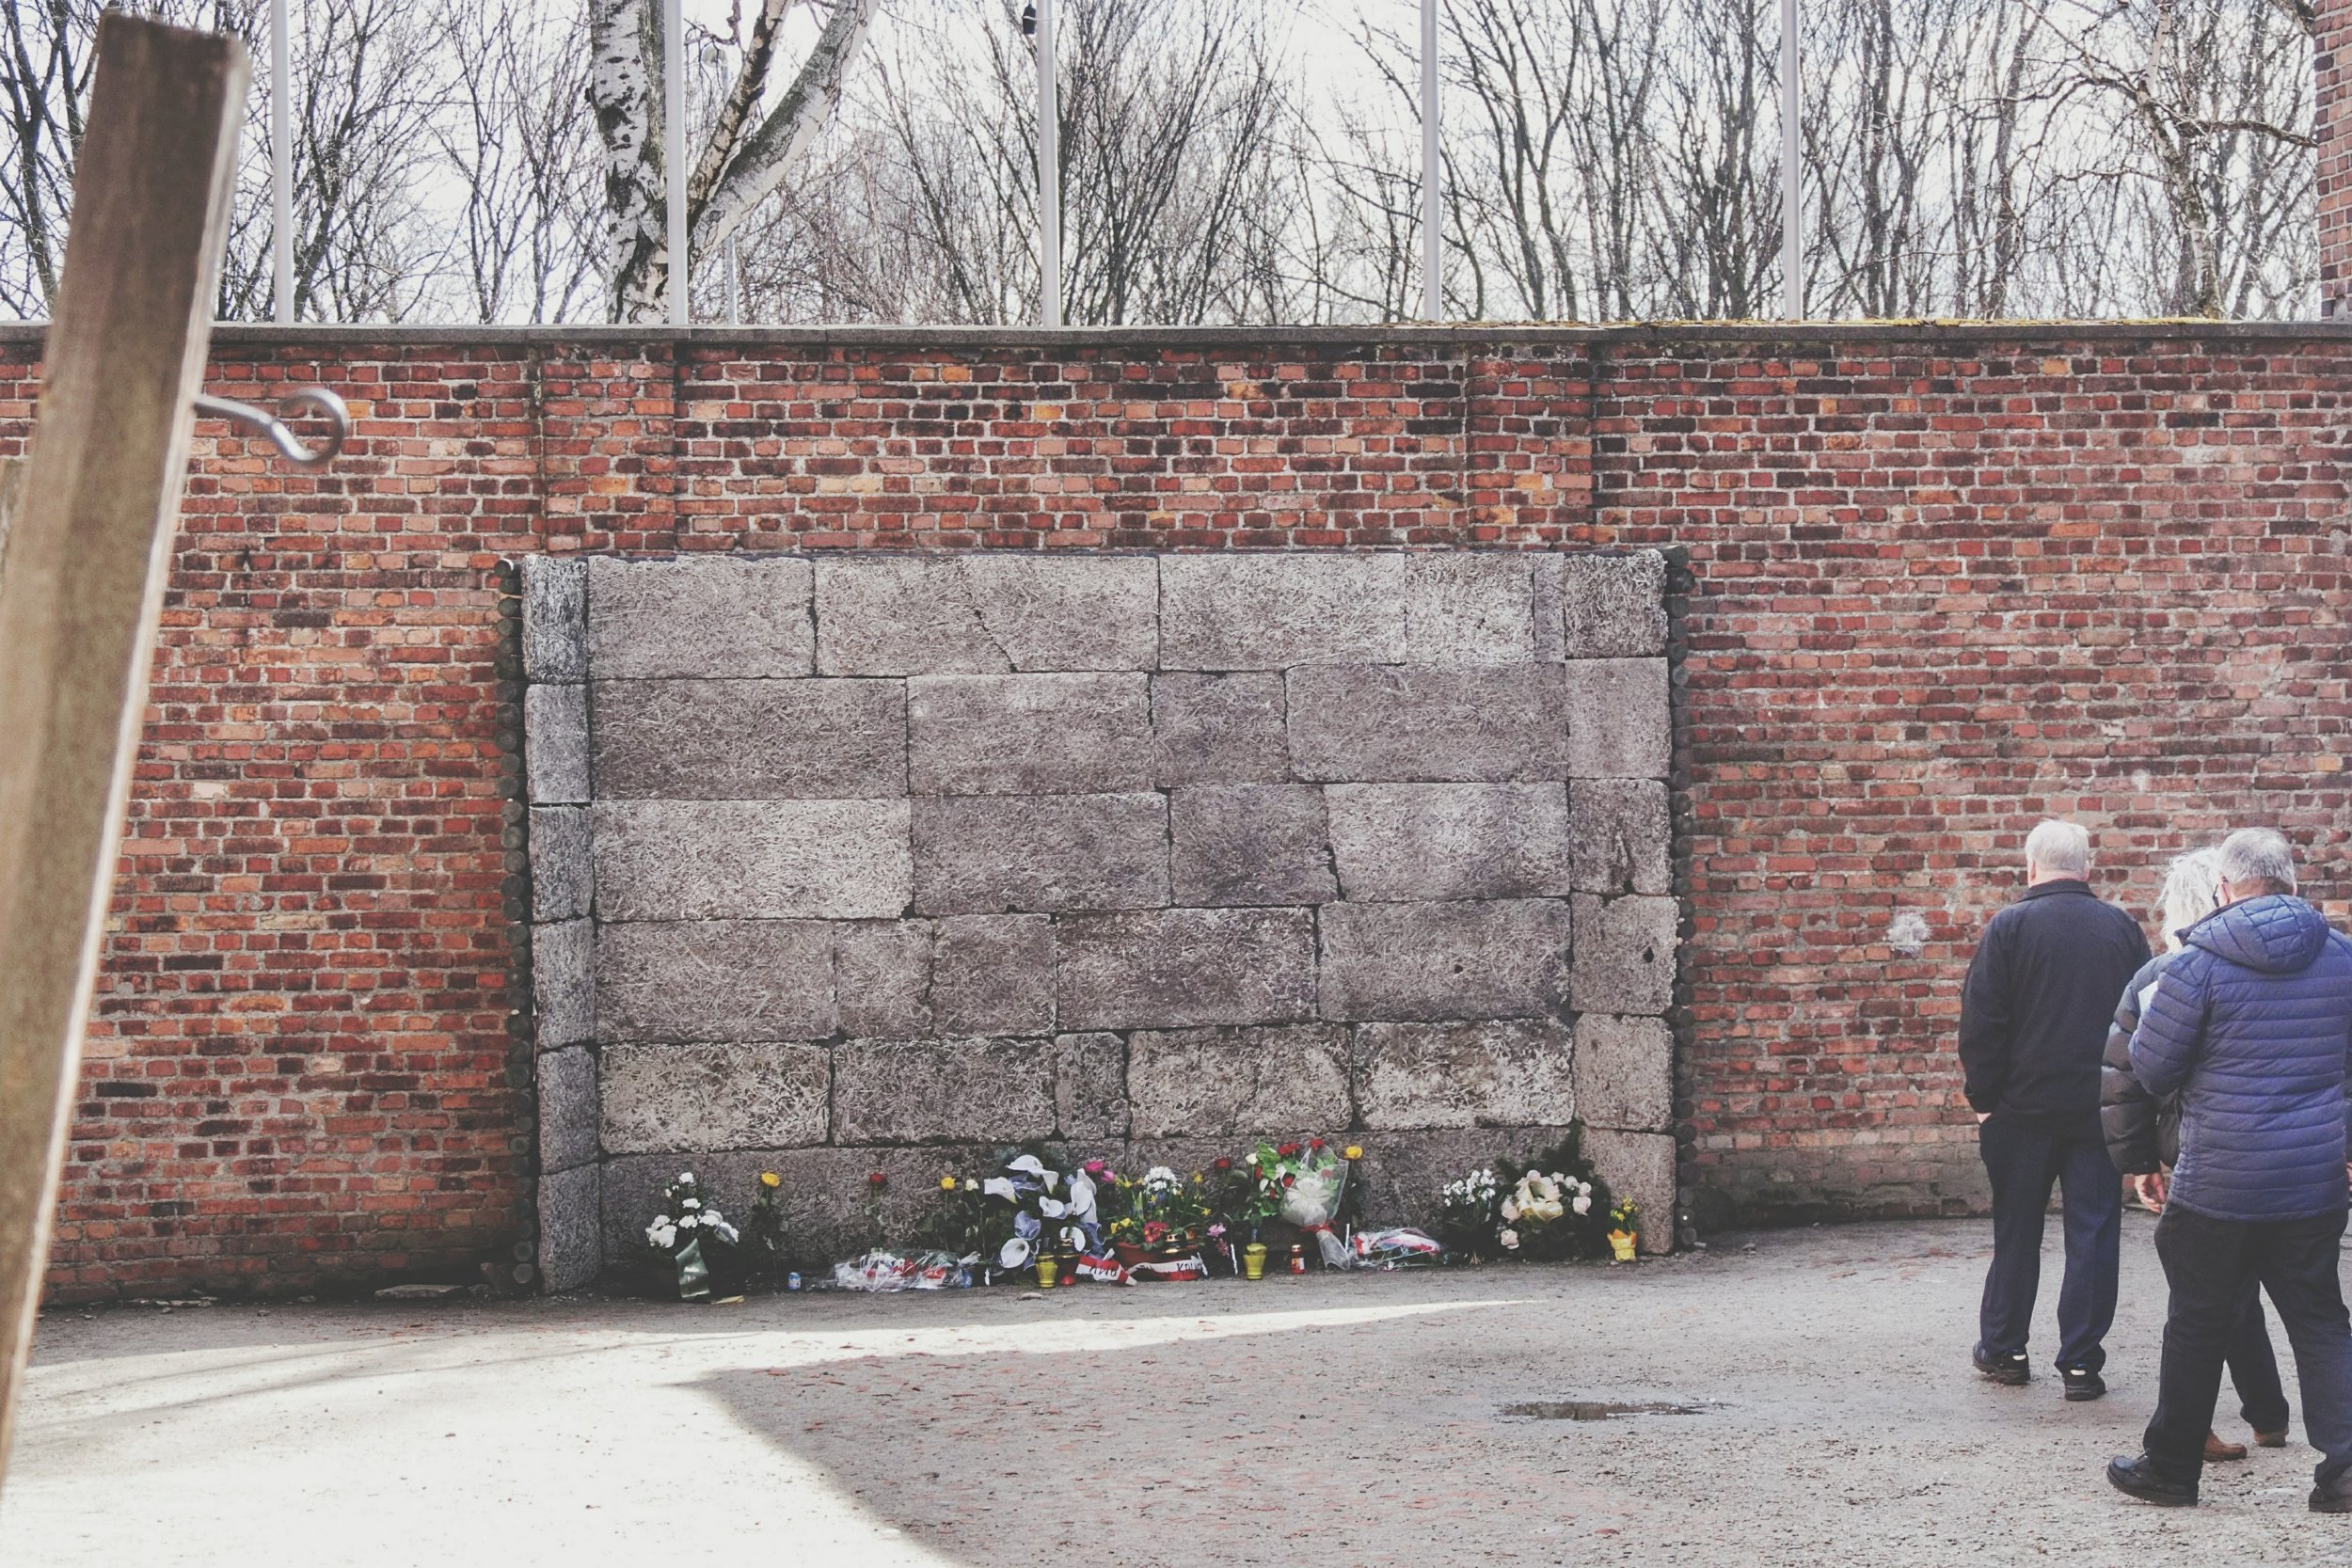 The shooting wall. To the left, the poles for hanging people by the wrists.